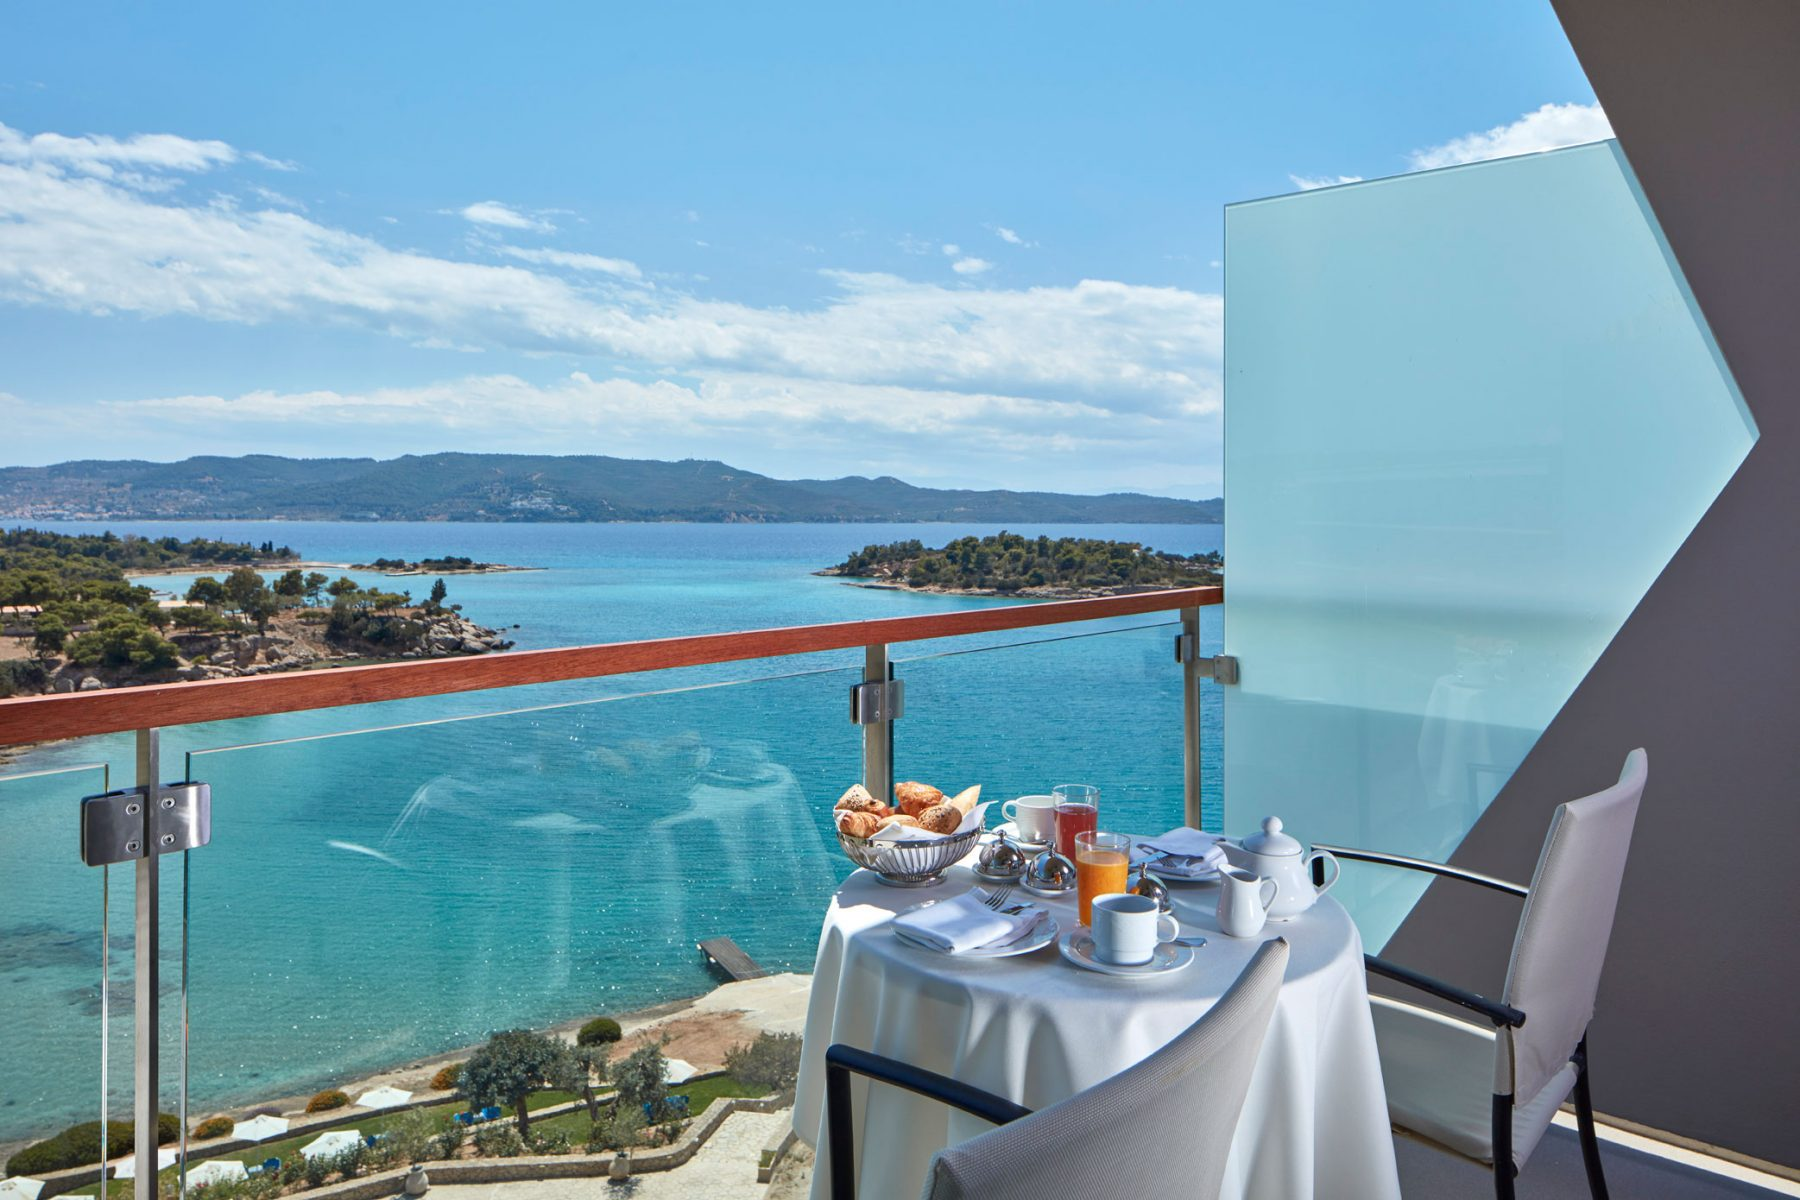 Balcony breakfast at AKS Hotels in Porto Heli